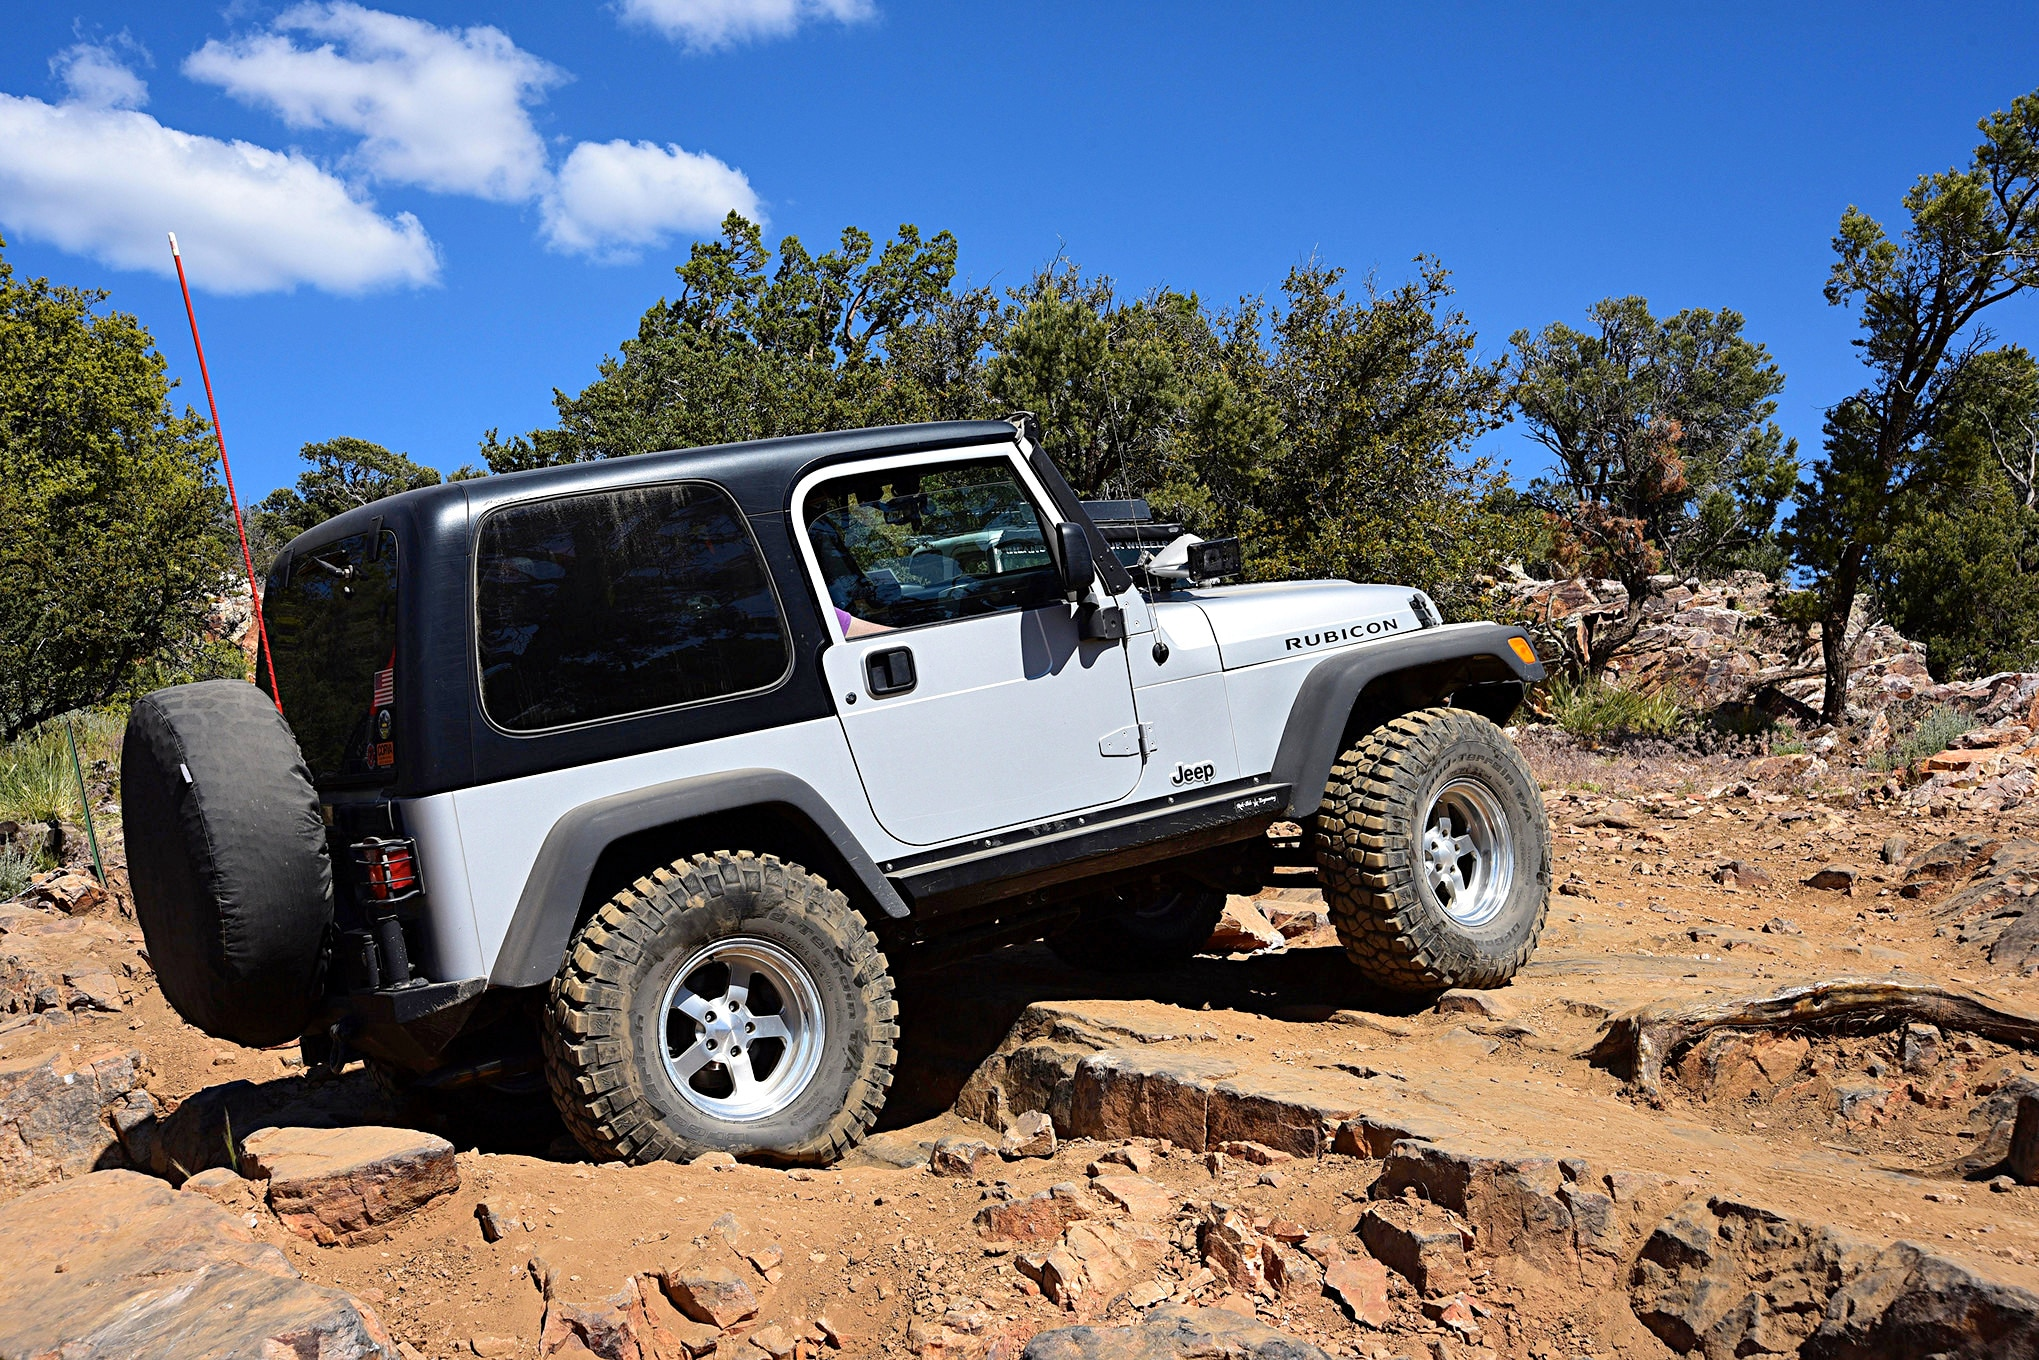 024 jeep event big bear forest fest 2019 inland empire